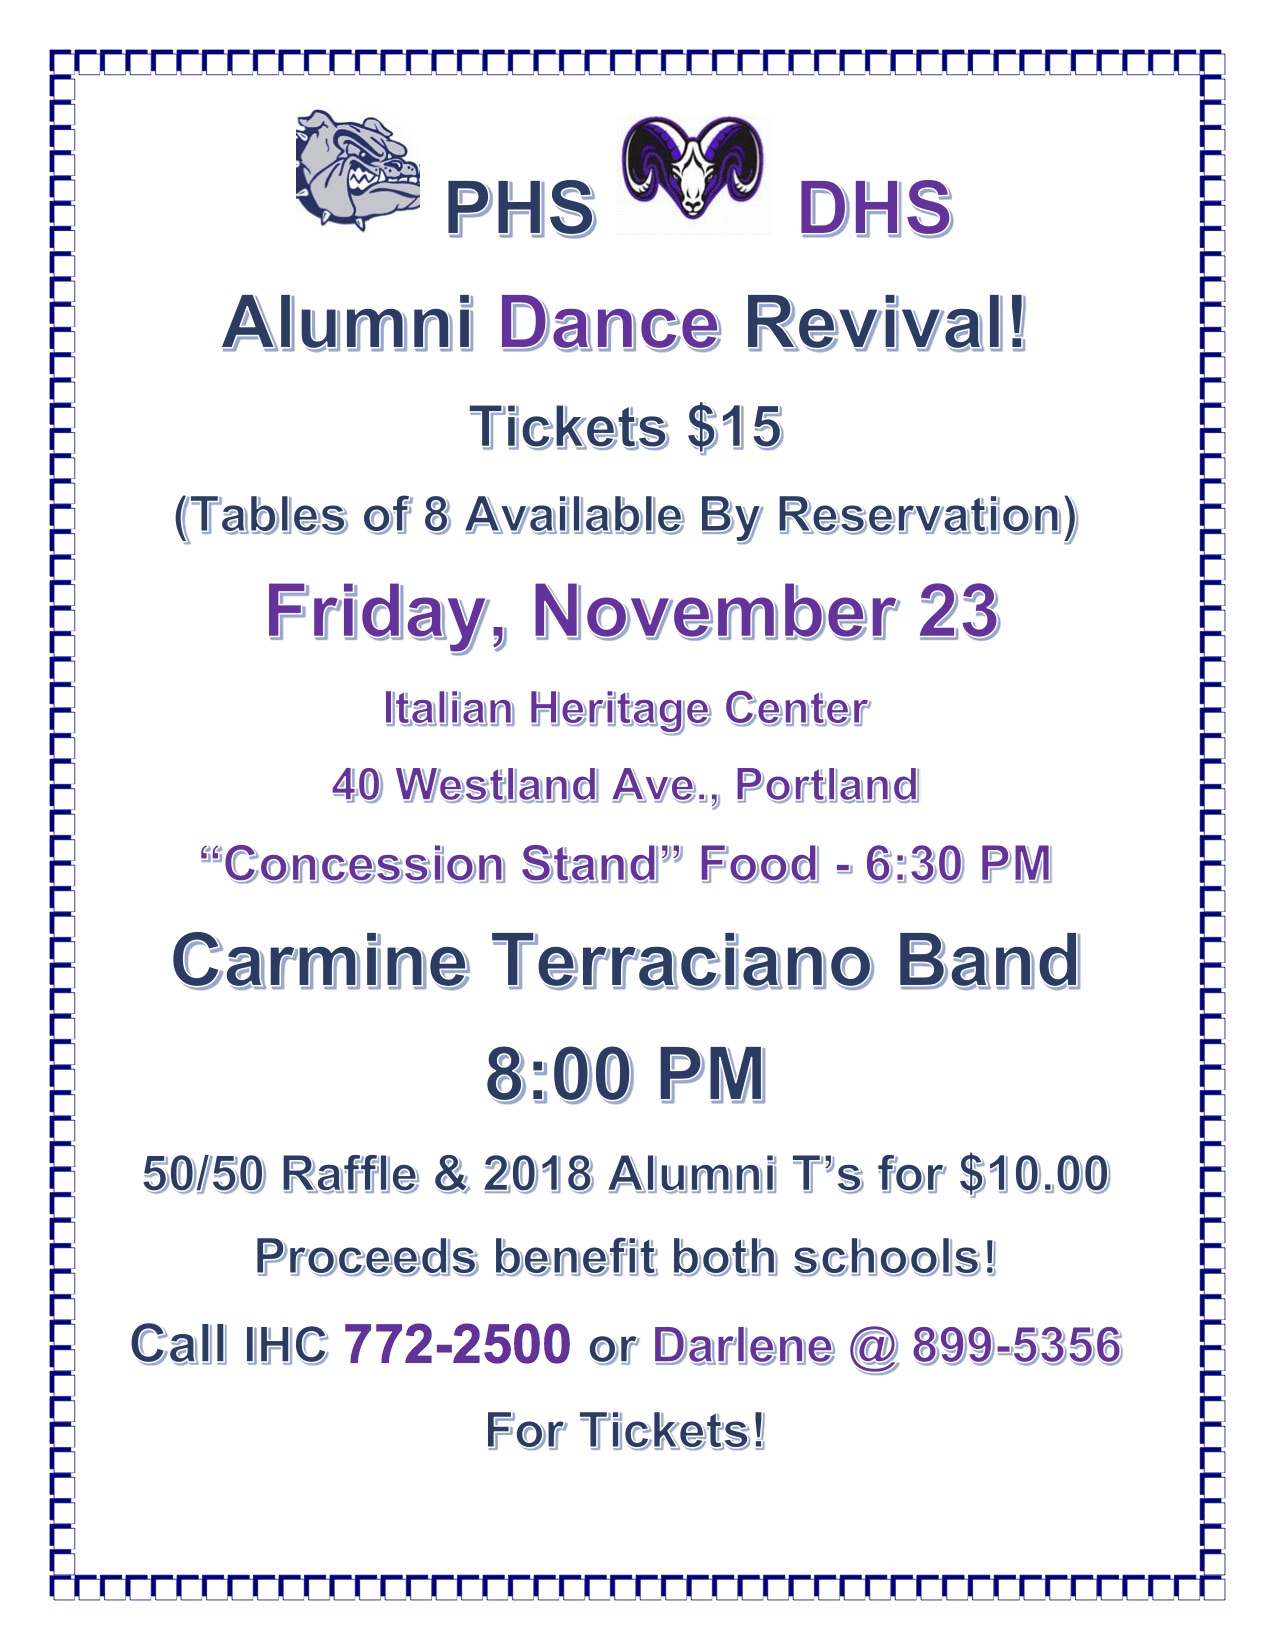 Phs, Dhs Traditions: Game And Alumni Dance – Portland Public Regarding University Of Southern Maine Academic Calendar 2021